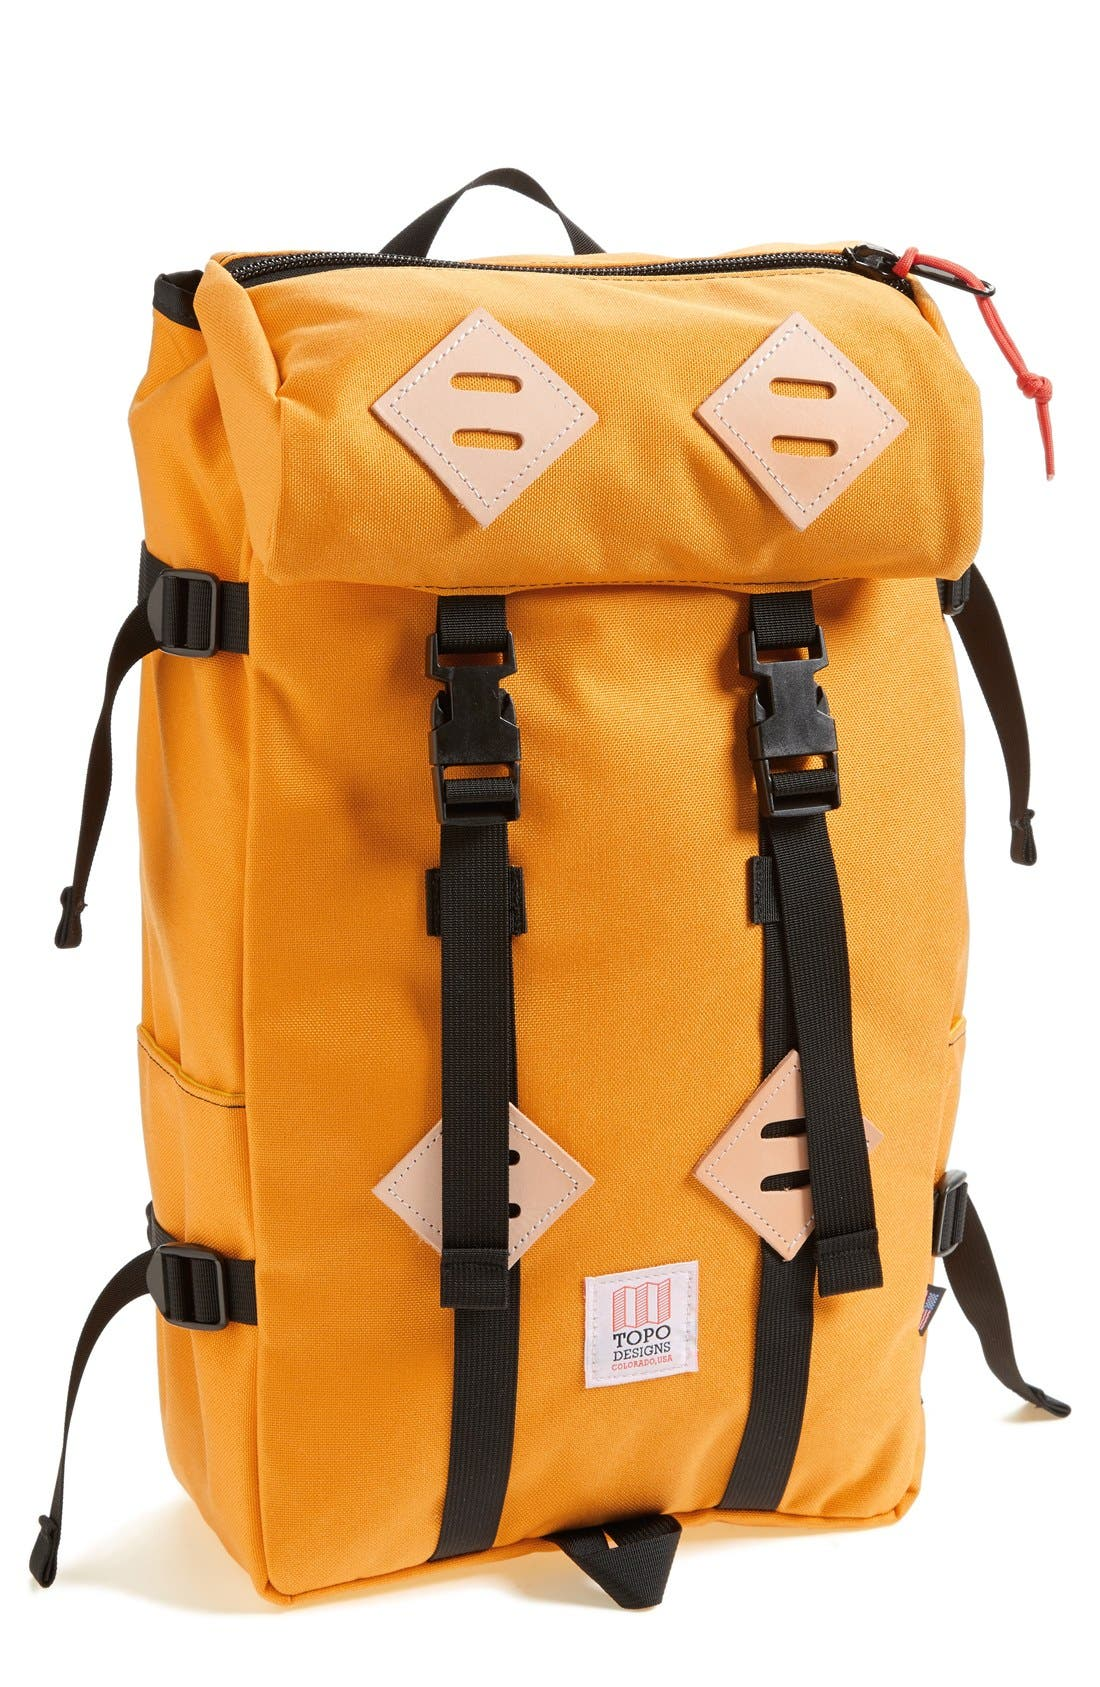 Topo Designs 'Klettersack' Backpack